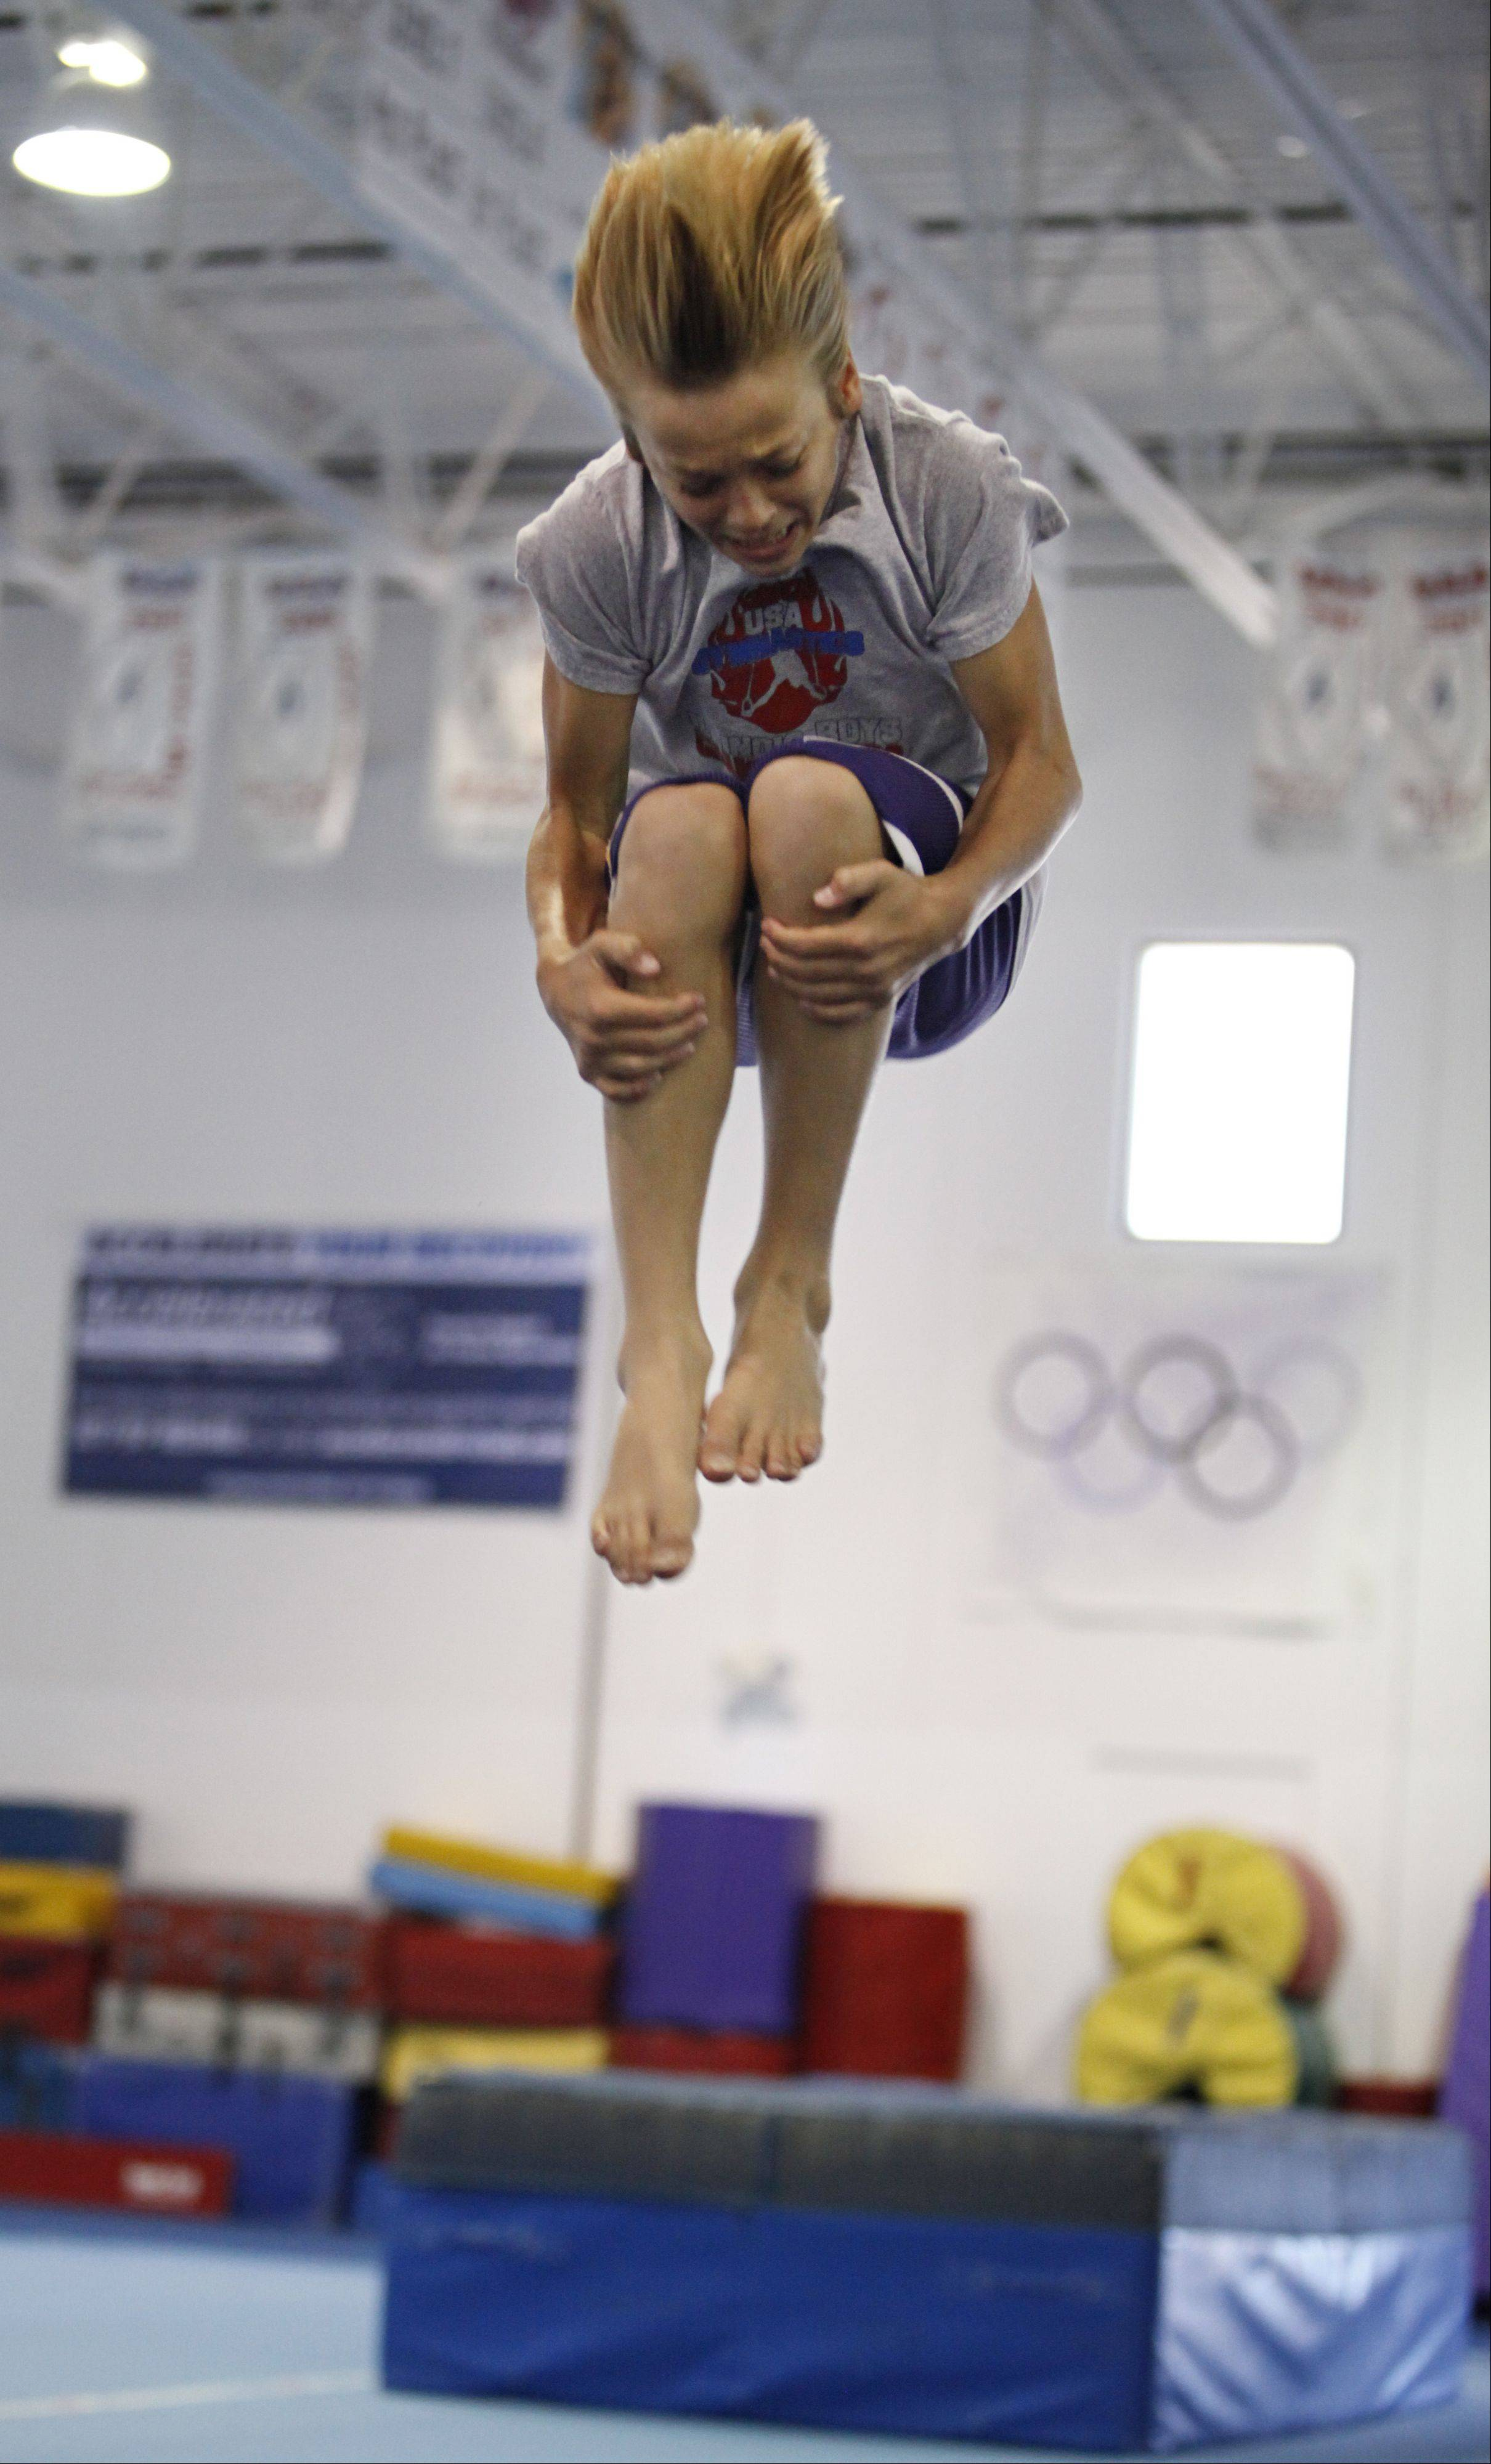 Austin Jones of St. Charles spins through the air in a tuck at the St. Charles Gymnastics Academy. He took the gold medal in the vault and placed 5th in the parallel bars in his age and level at the 2013 Junior Olympic Championships in Portland, Ore.